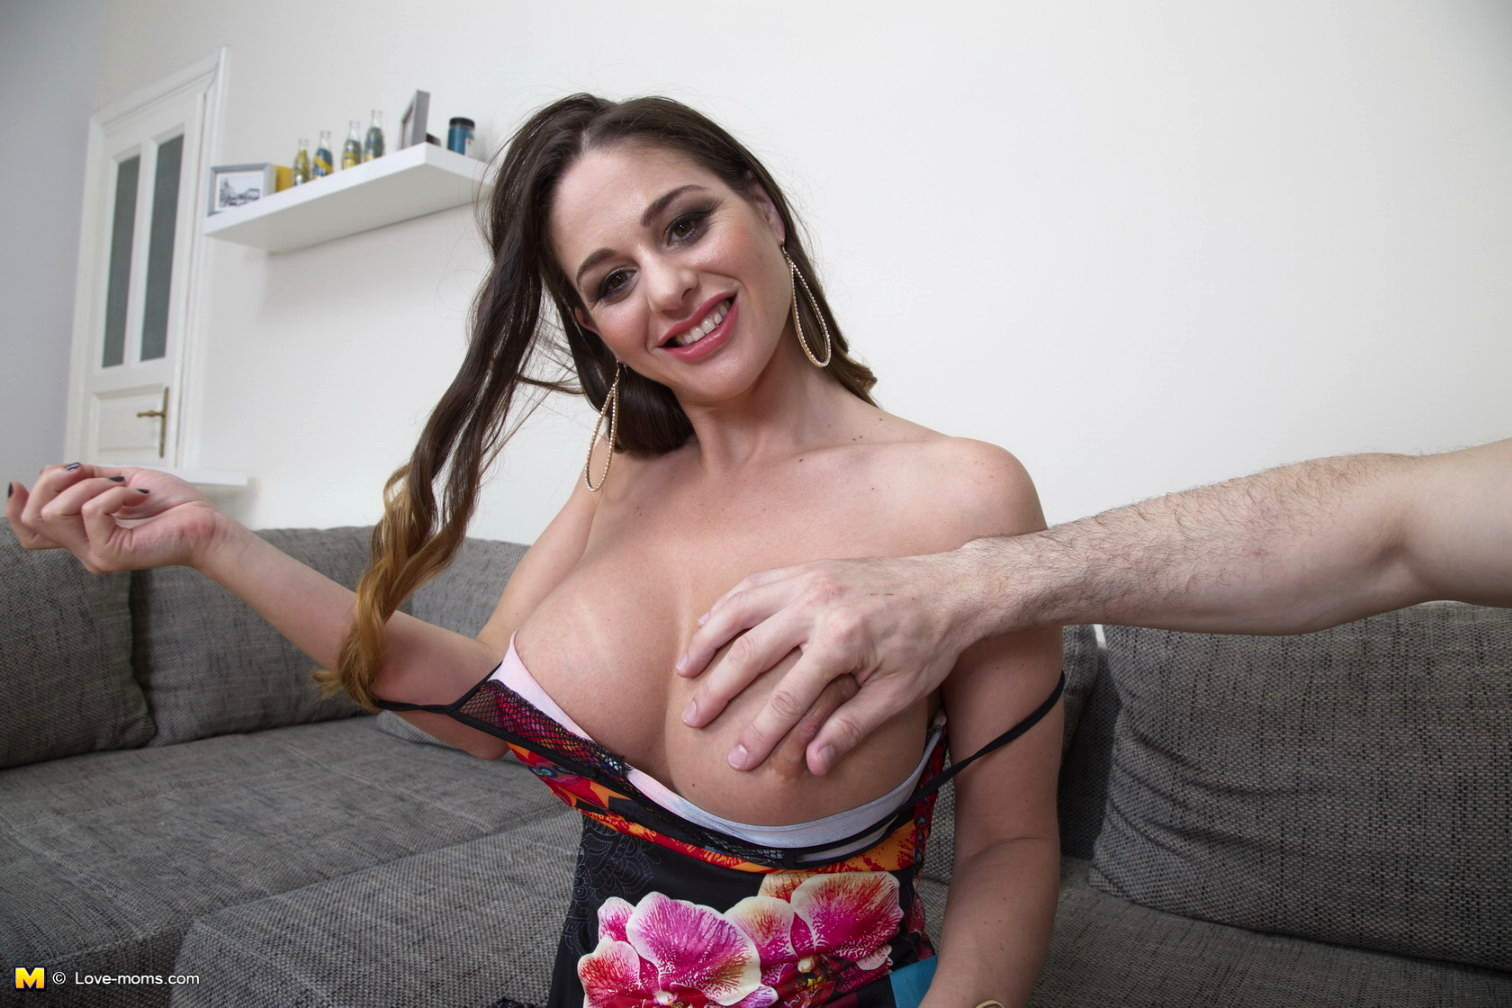 Babe Today Mature Nl Cathy Heaven Hey Big Tits Livefeed -3790